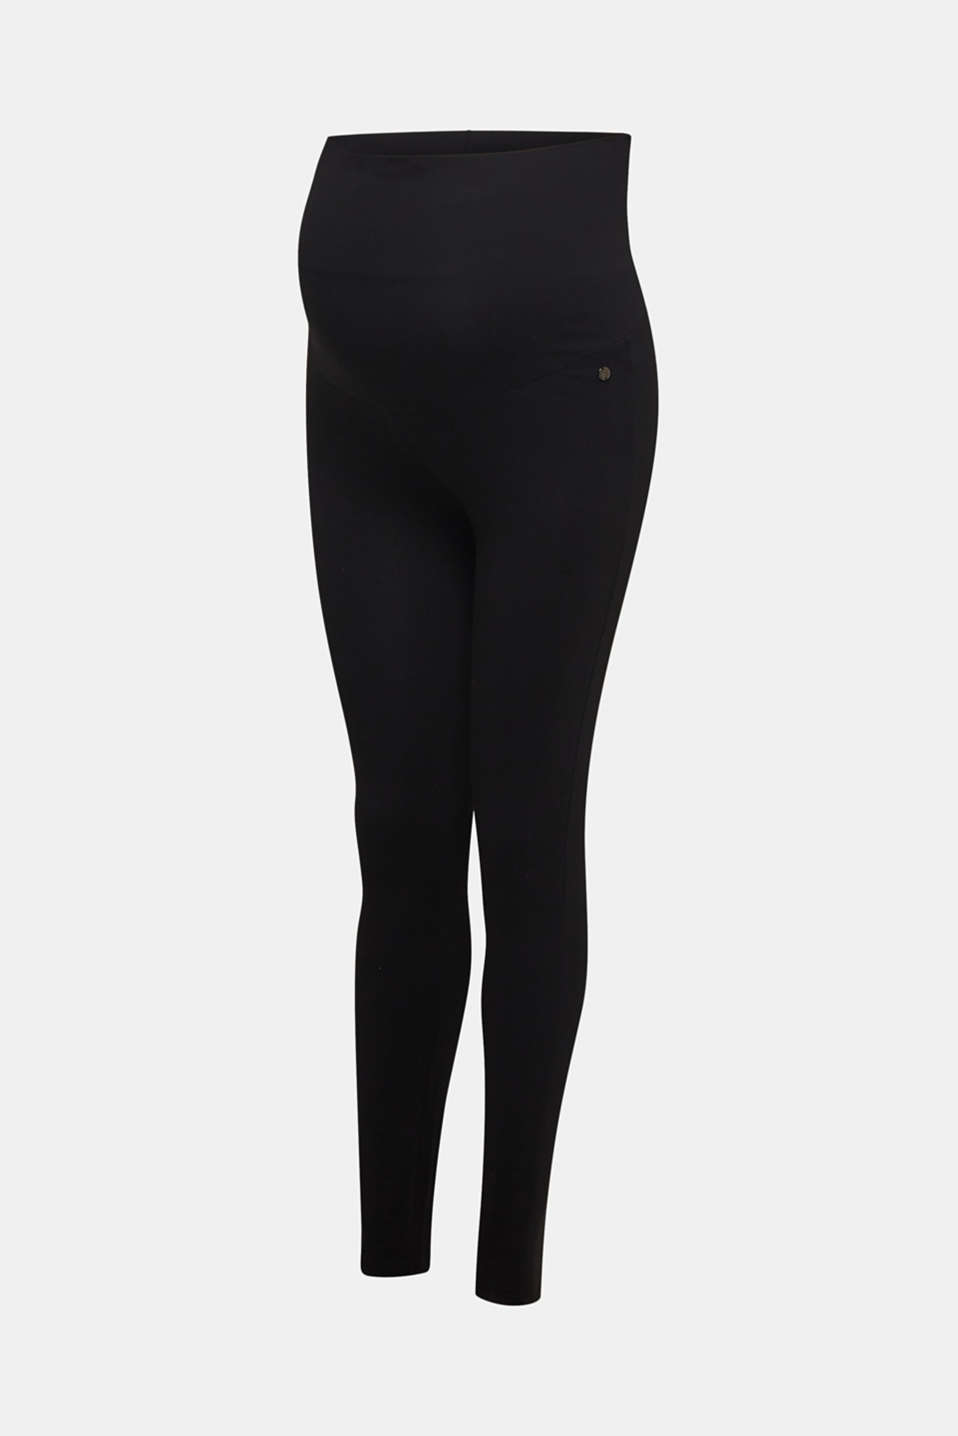 Leggings with an over-bump waistband, LCBLACK, detail image number 3